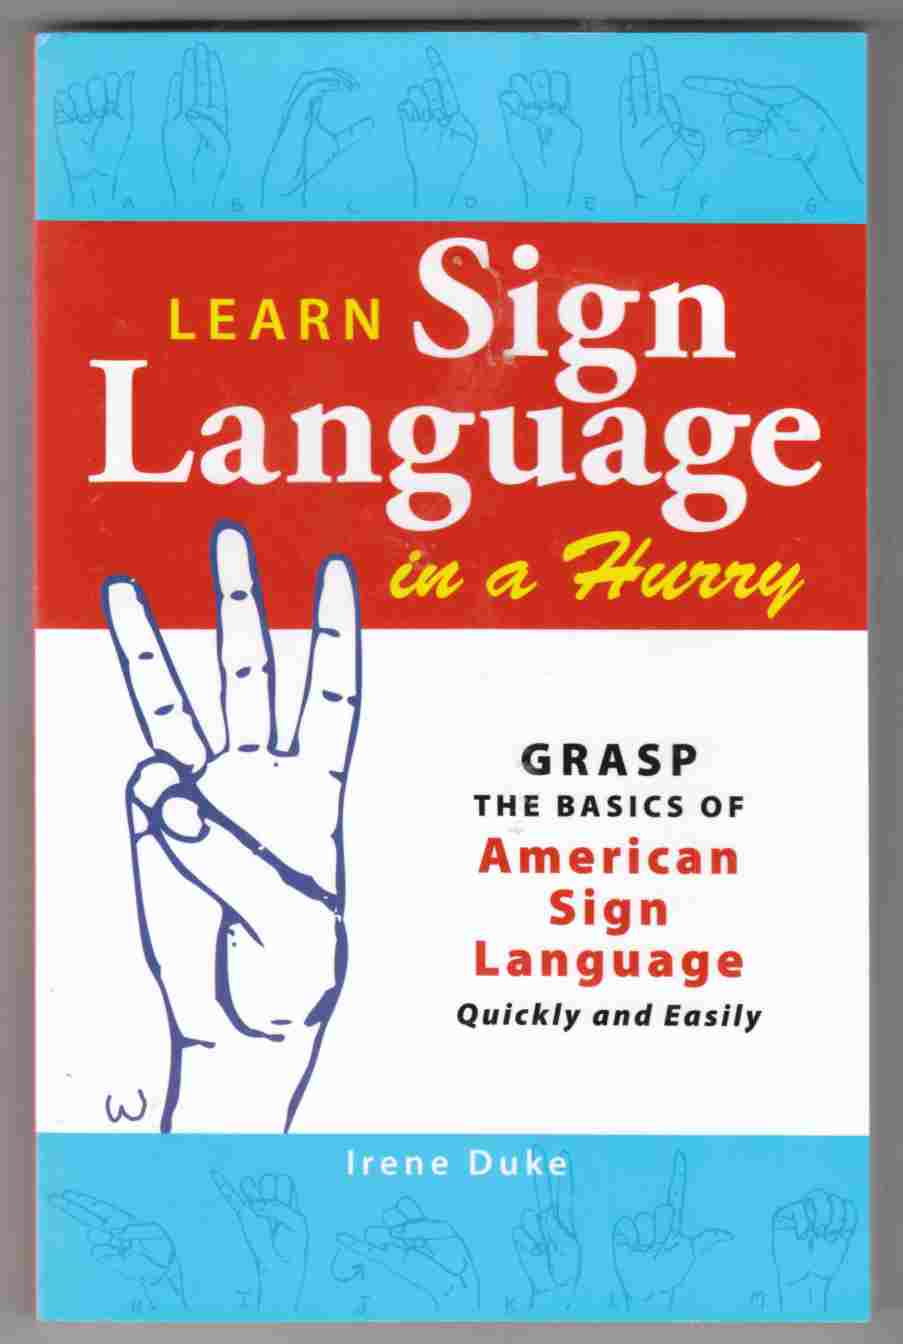 Image for Learn Sign Language in a Hurry Grasp the Basics of American Sign Language Quickly and Easily